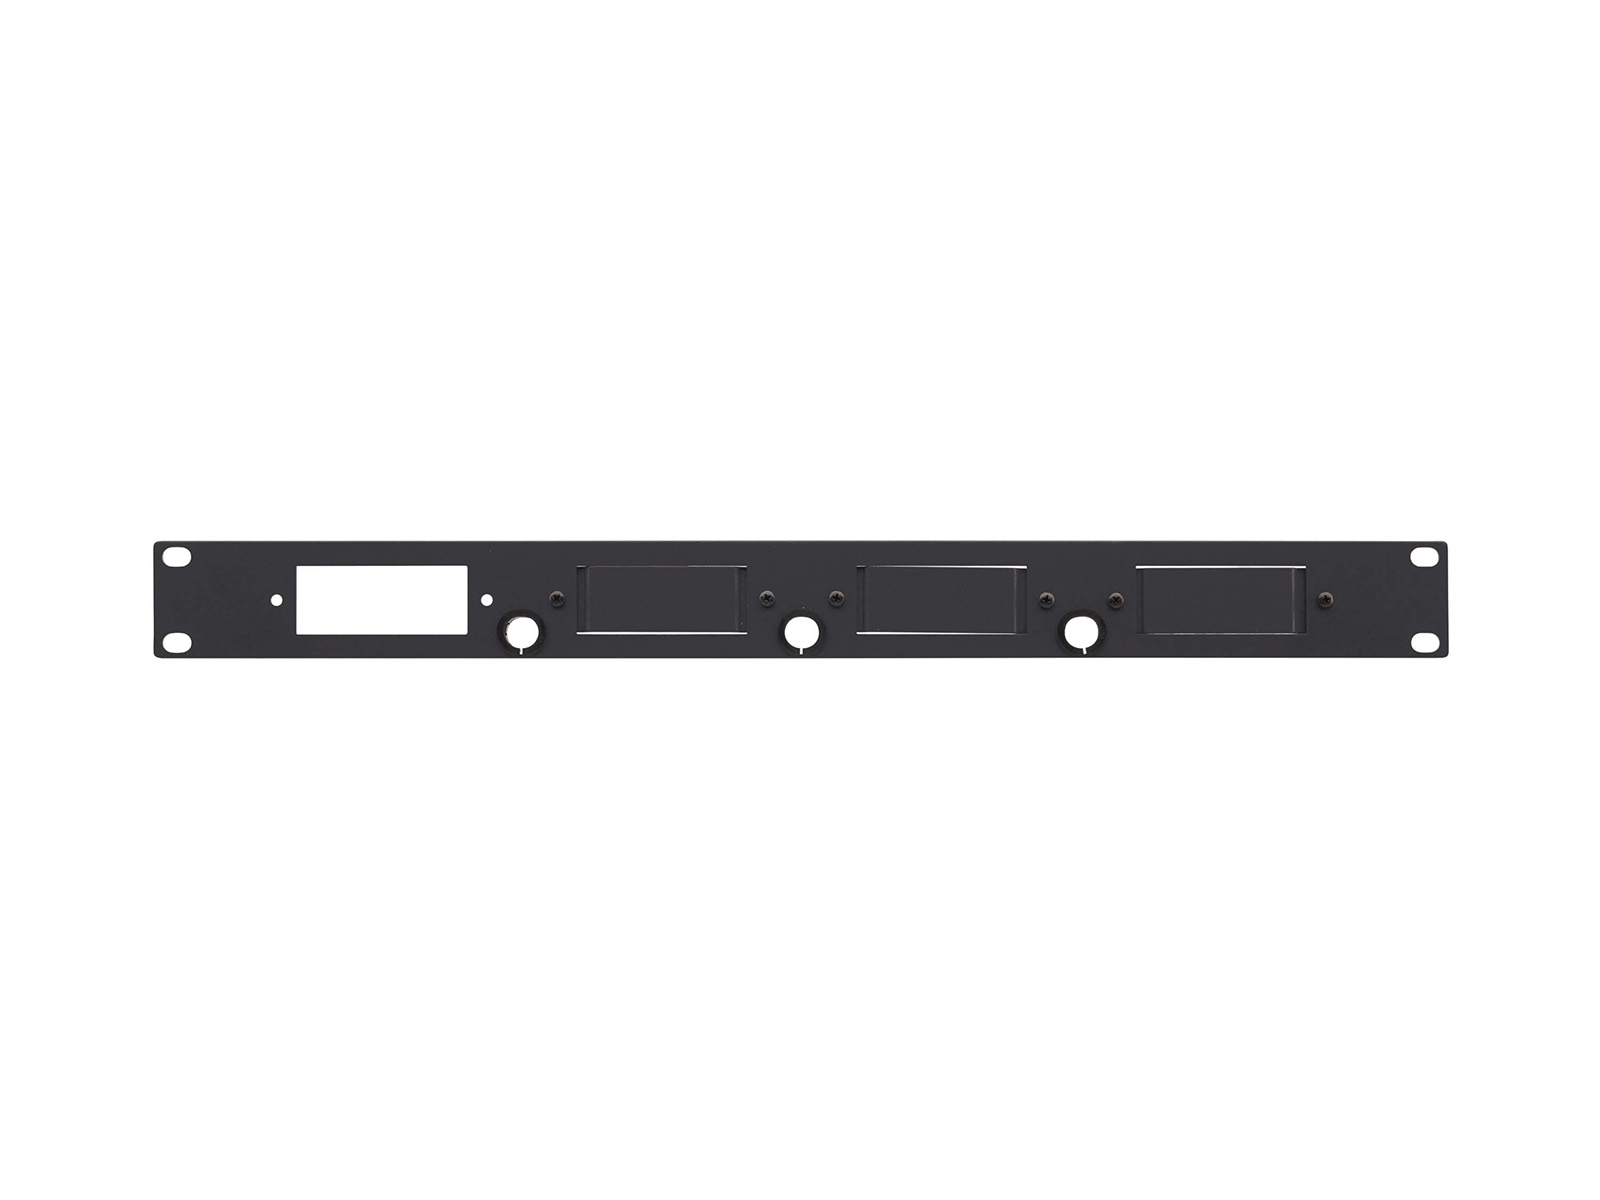 RK-4PT 19-Inch Rack Adapter for Pico TOOLS by Kramer